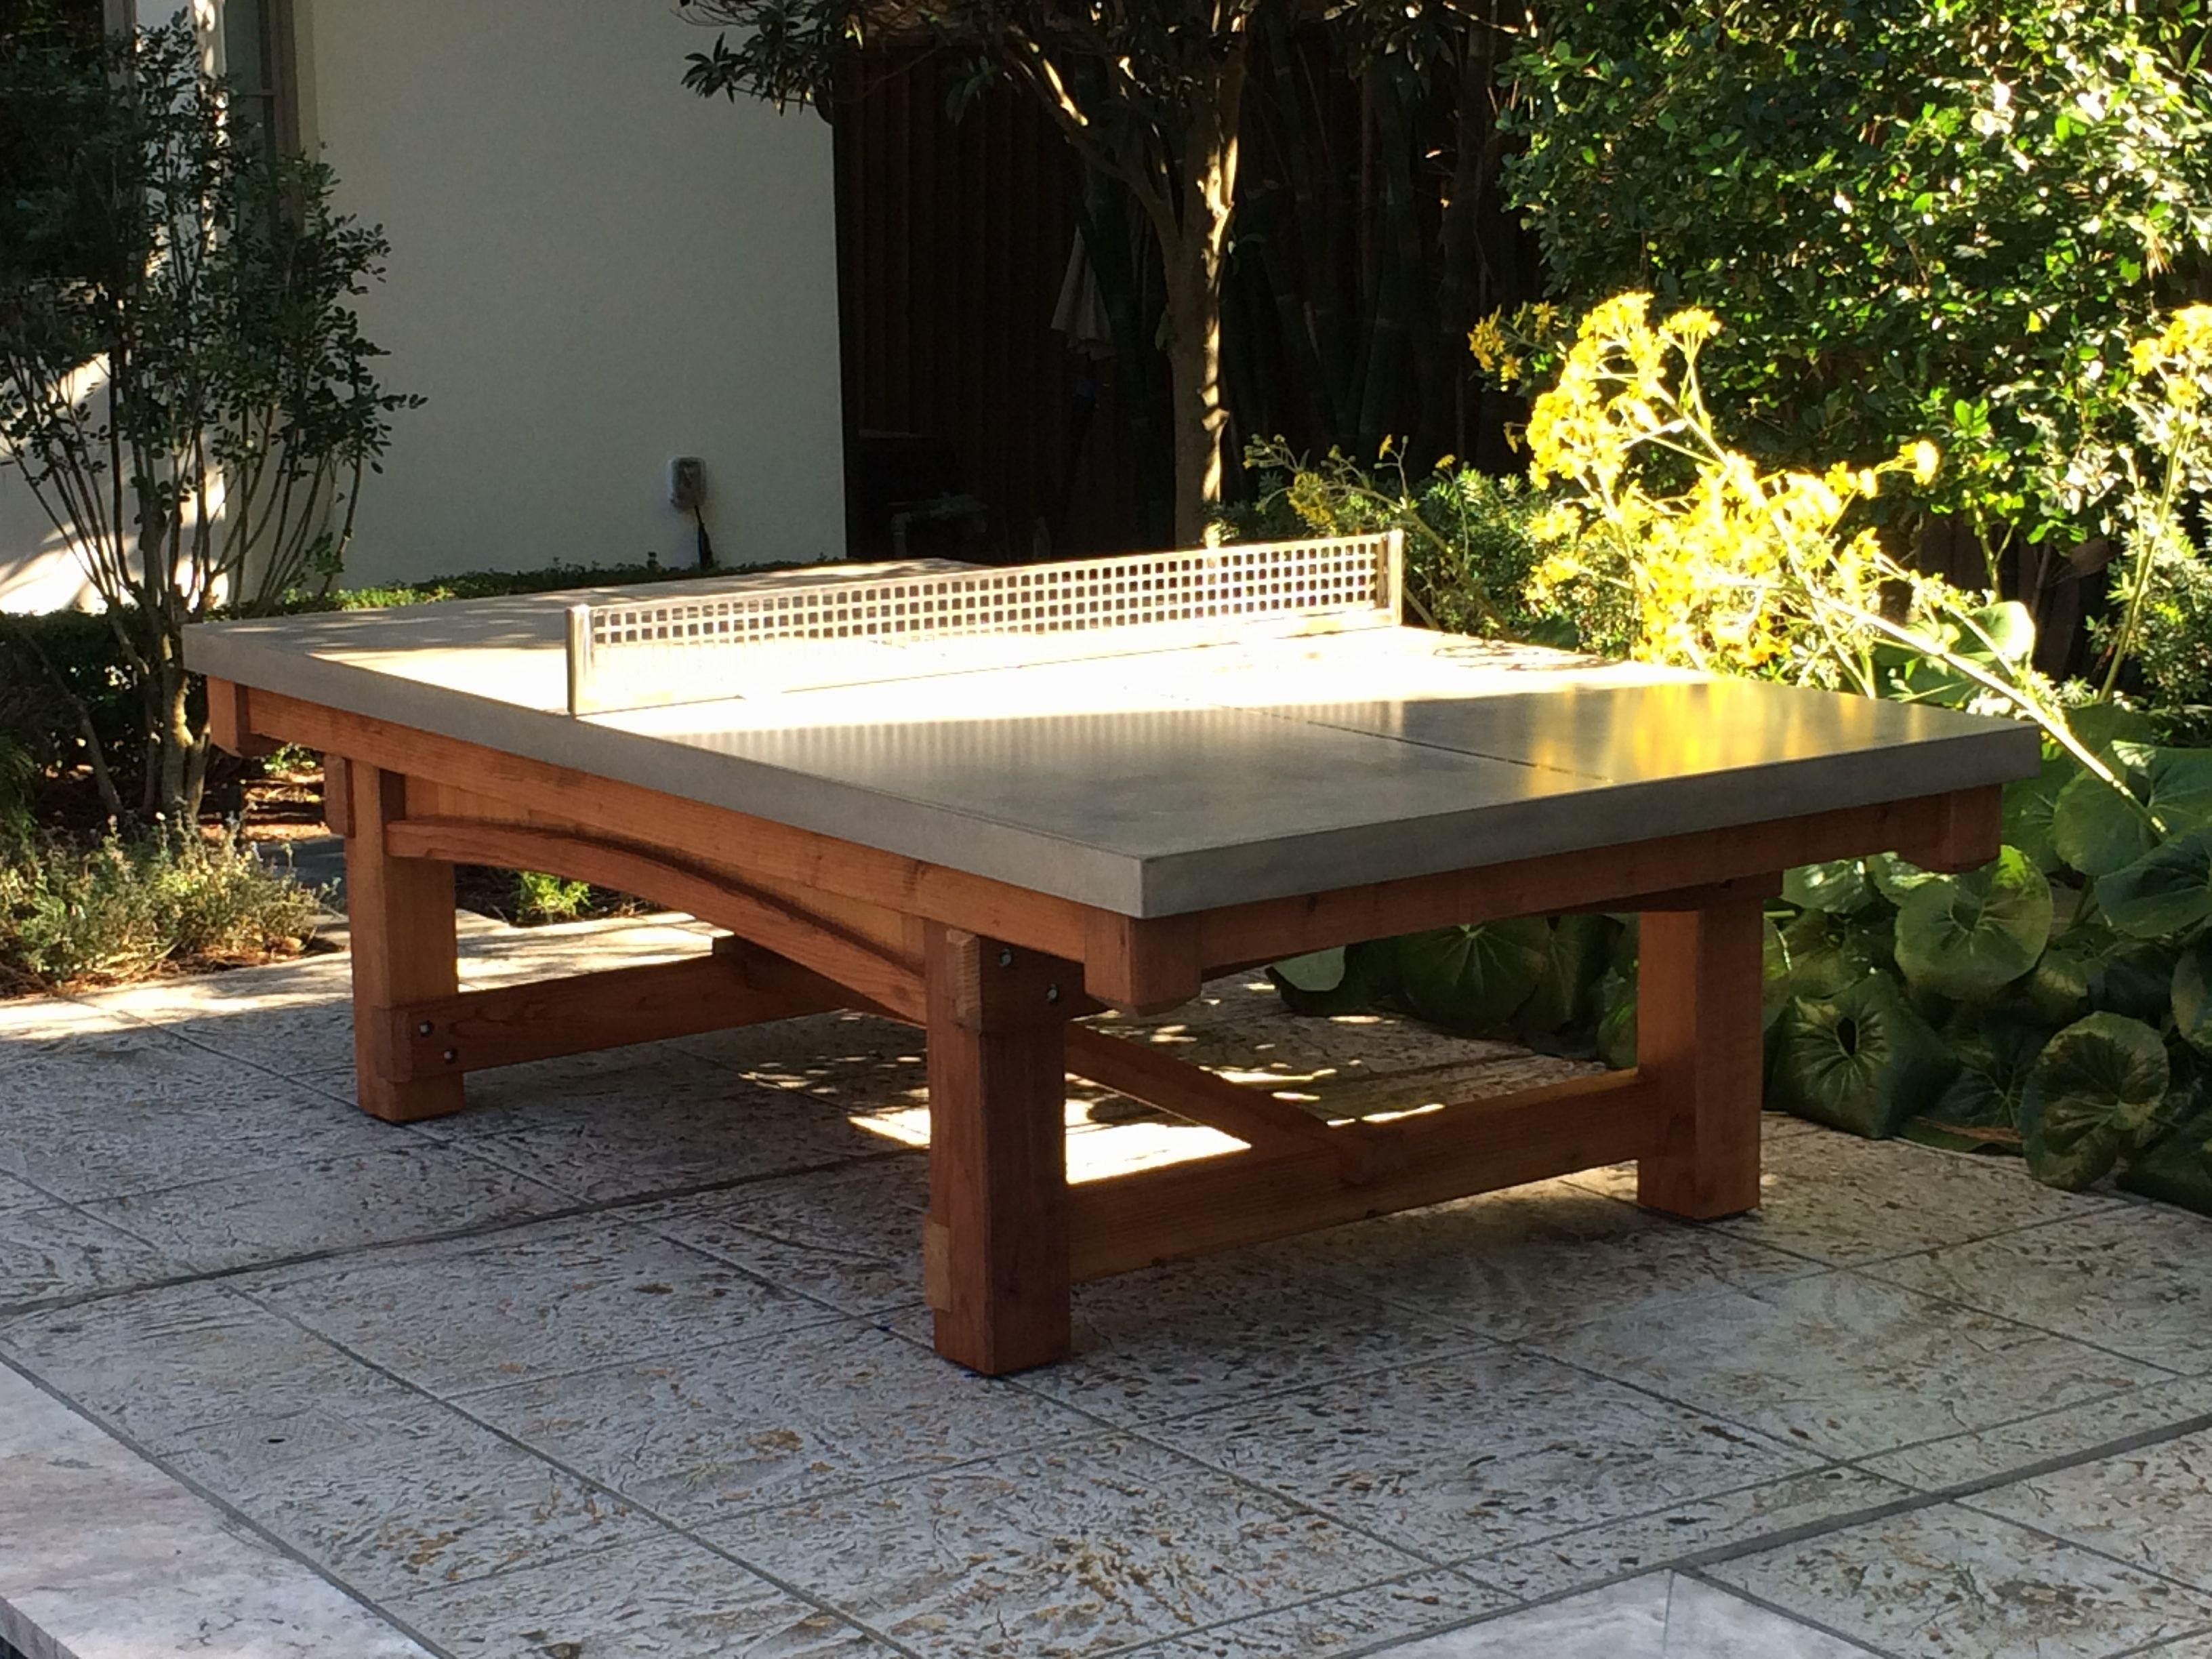 This One Of A Kind Outdoor Ping Pong Table Was A Custom